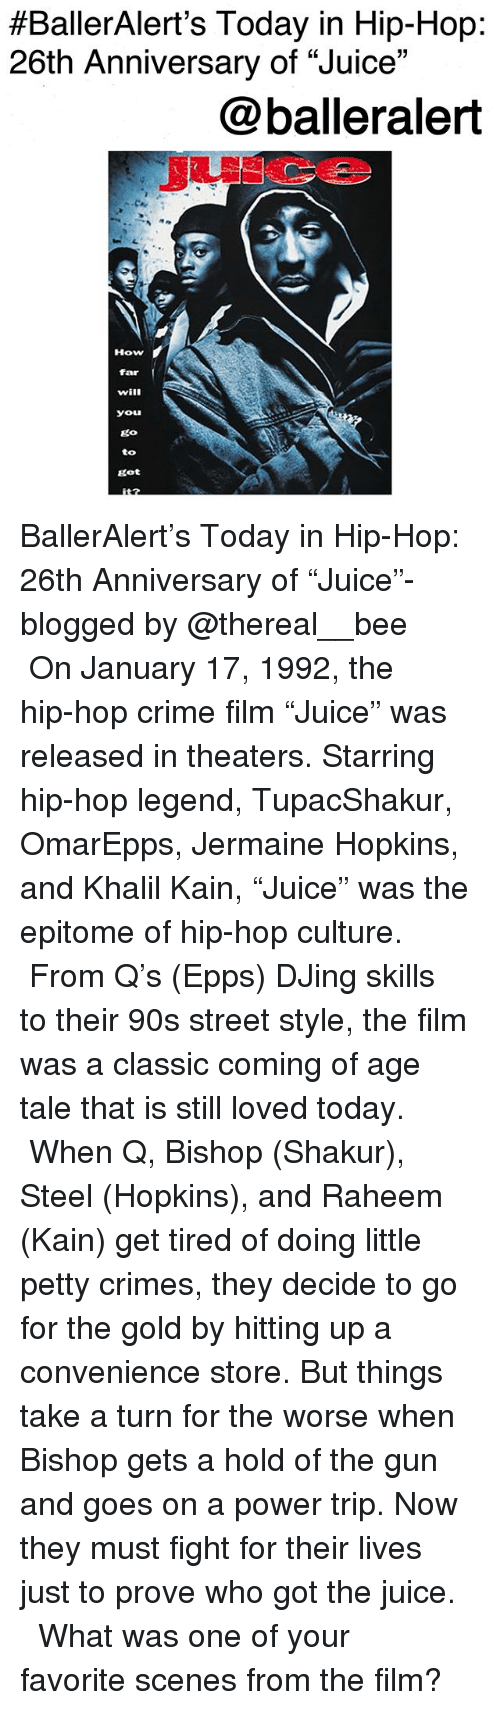 "For The Gold:  #BallerAlert's Today in Hip-Hop:  26th Anniversary of ""Juice""  @balleralert  How  far  will  you  go  to  got BallerAlert's Today in Hip-Hop: 26th Anniversary of ""Juice""-blogged by @thereal__bee ⠀⠀⠀⠀⠀⠀⠀ ⠀⠀⠀⠀ On January 17, 1992, the hip-hop crime film ""Juice"" was released in theaters. Starring hip-hop legend, TupacShakur, OmarEpps, Jermaine Hopkins, and Khalil Kain, ""Juice"" was the epitome of hip-hop culture. ⠀⠀⠀⠀⠀⠀⠀ ⠀⠀⠀⠀ From Q's (Epps) DJing skills to their 90s street style, the film was a classic coming of age tale that is still loved today. ⠀⠀⠀⠀⠀⠀⠀ ⠀⠀⠀⠀ When Q, Bishop (Shakur), Steel (Hopkins), and Raheem (Kain) get tired of doing little petty crimes, they decide to go for the gold by hitting up a convenience store. But things take a turn for the worse when Bishop gets a hold of the gun and goes on a power trip. Now they must fight for their lives just to prove who got the juice. ⠀⠀⠀⠀⠀⠀⠀ ⠀⠀⠀⠀ What was one of your favorite scenes from the film?"